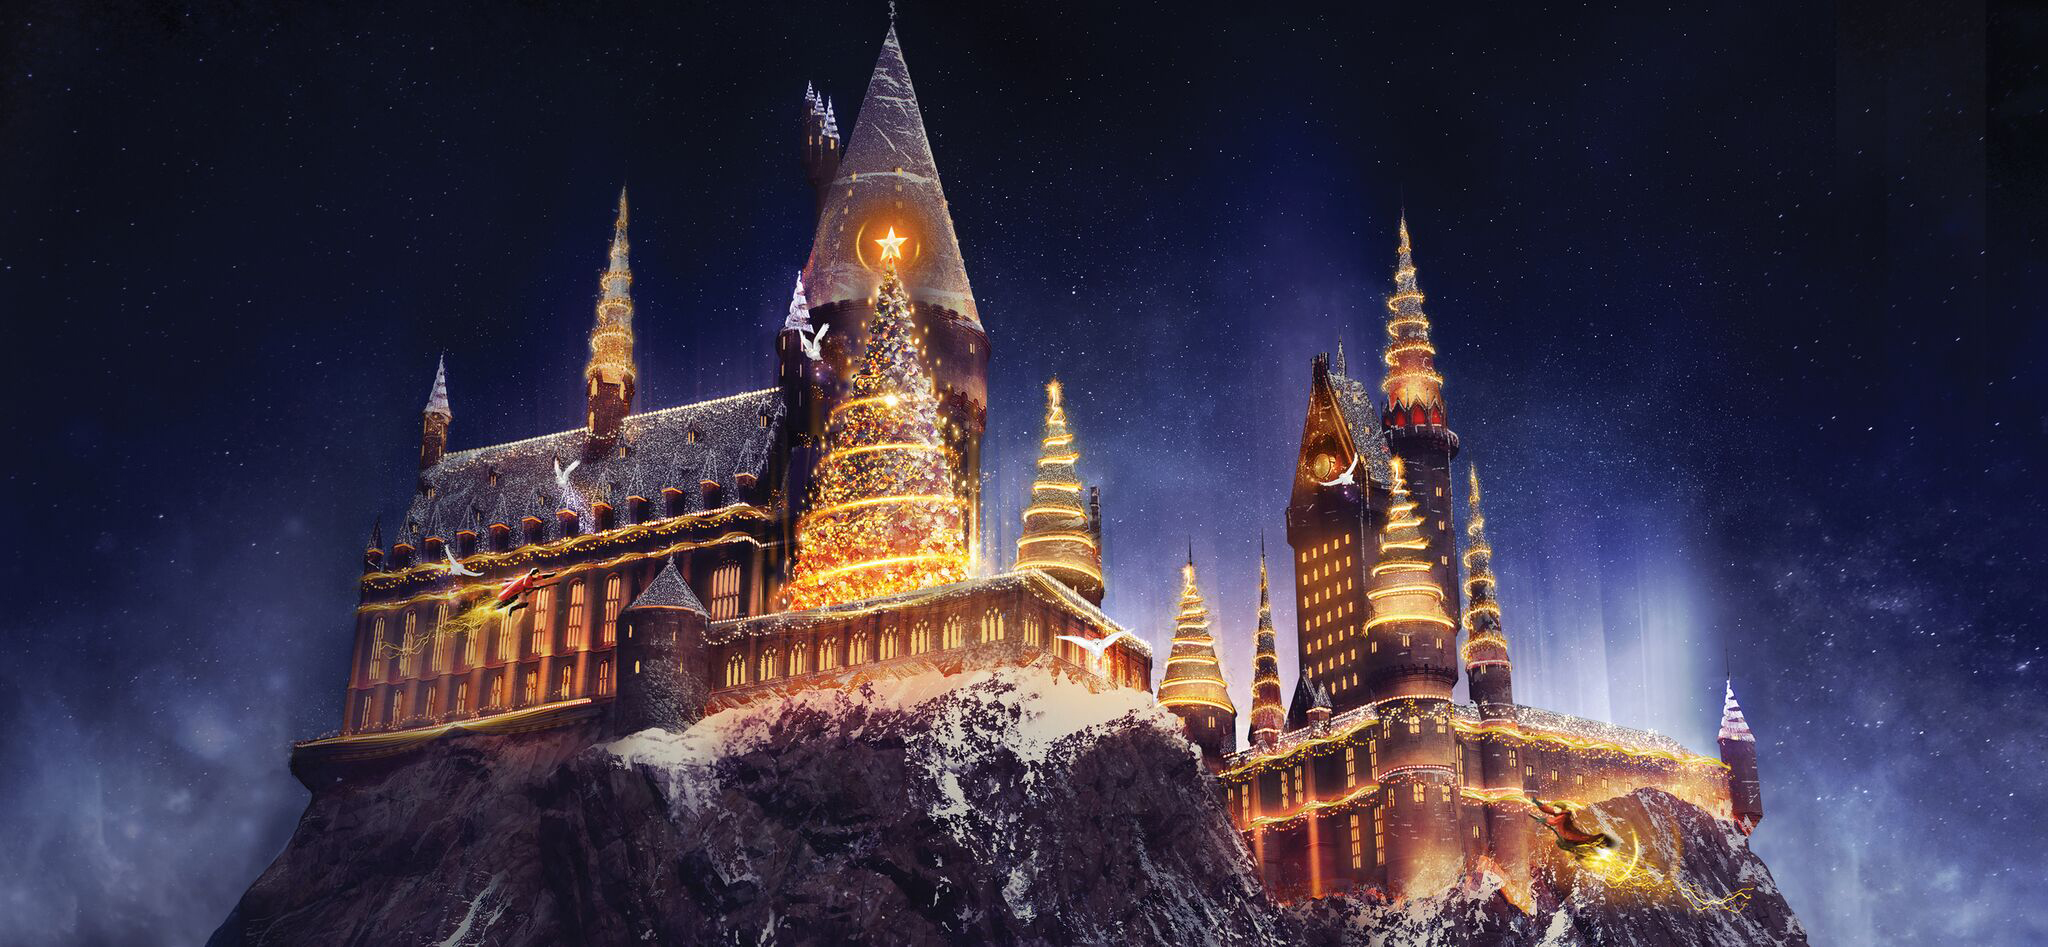 The Wizarding World of Harry Potter Christmas is coming to Universal Orlando Resort!